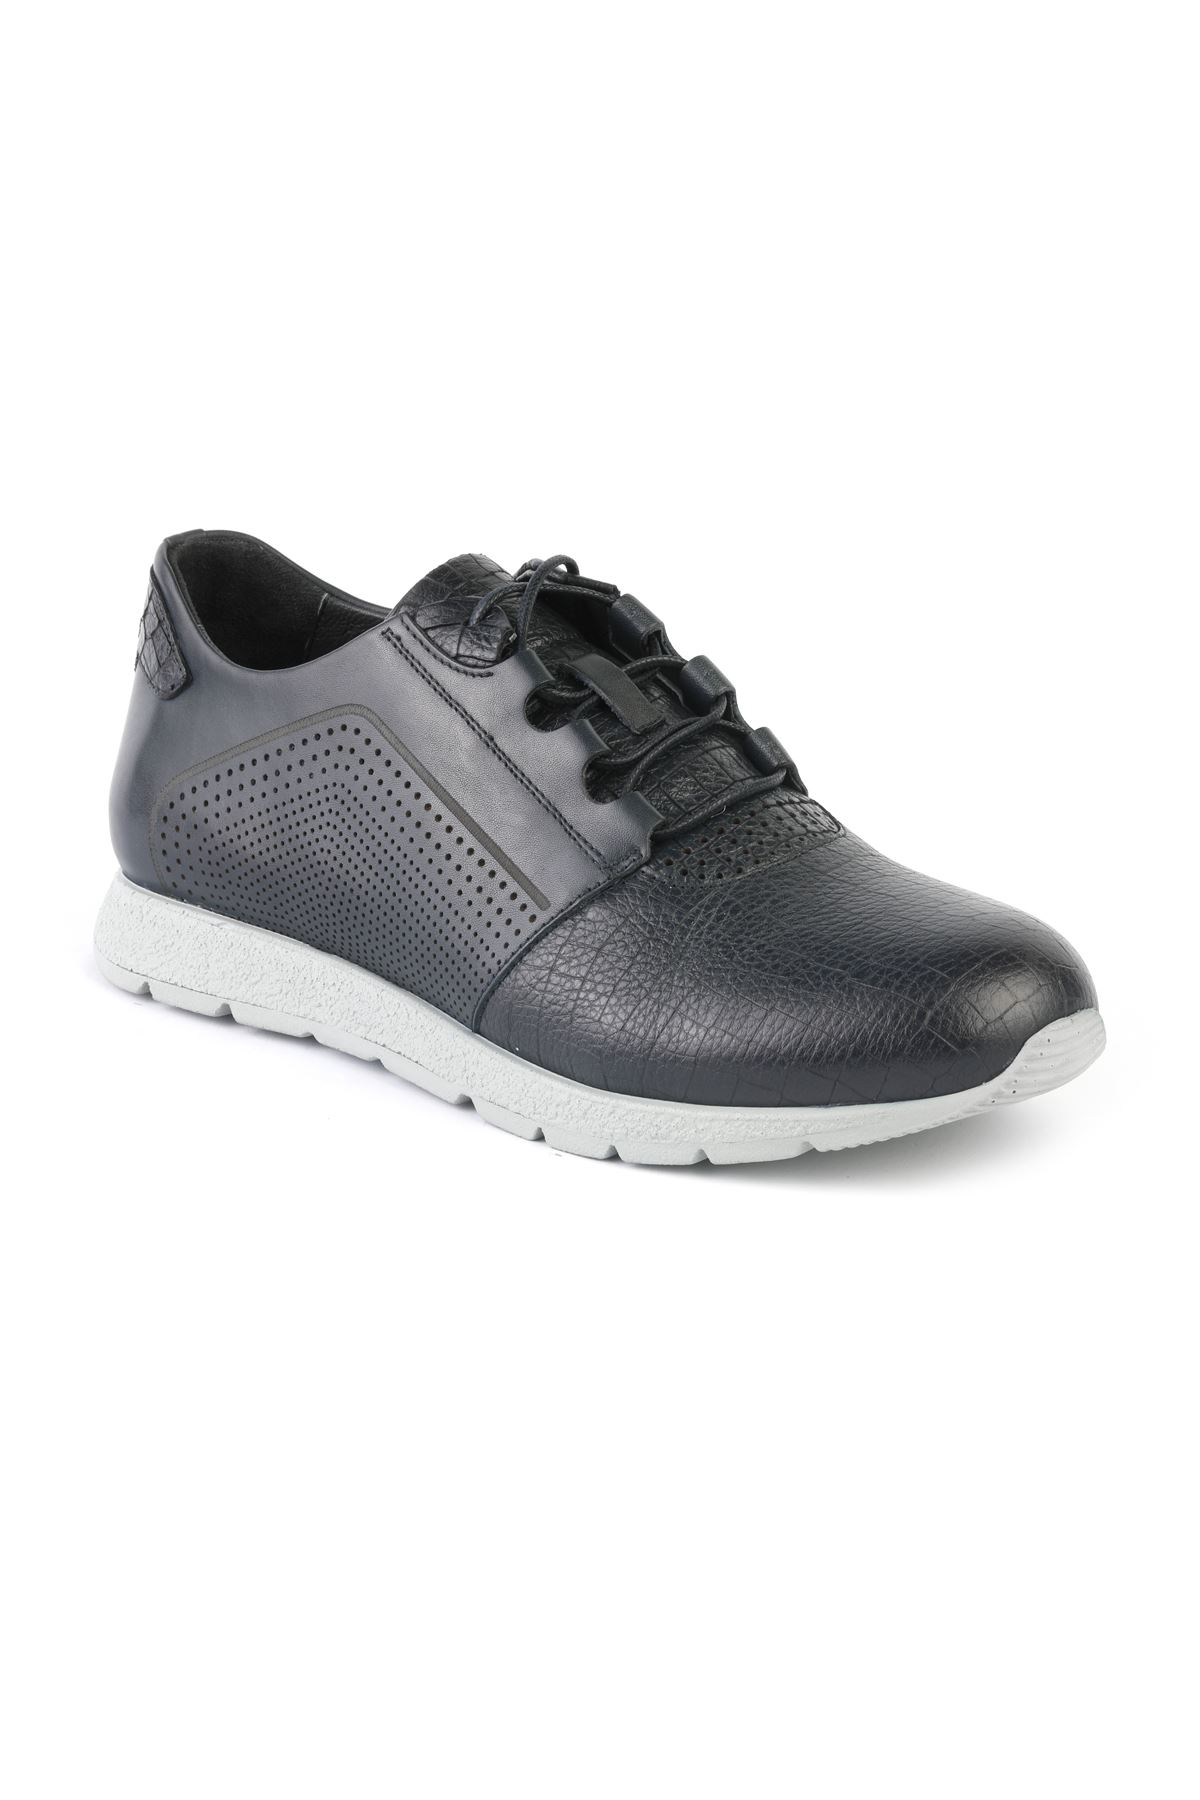 Libero T1209 Navy Blue Sport Shoes